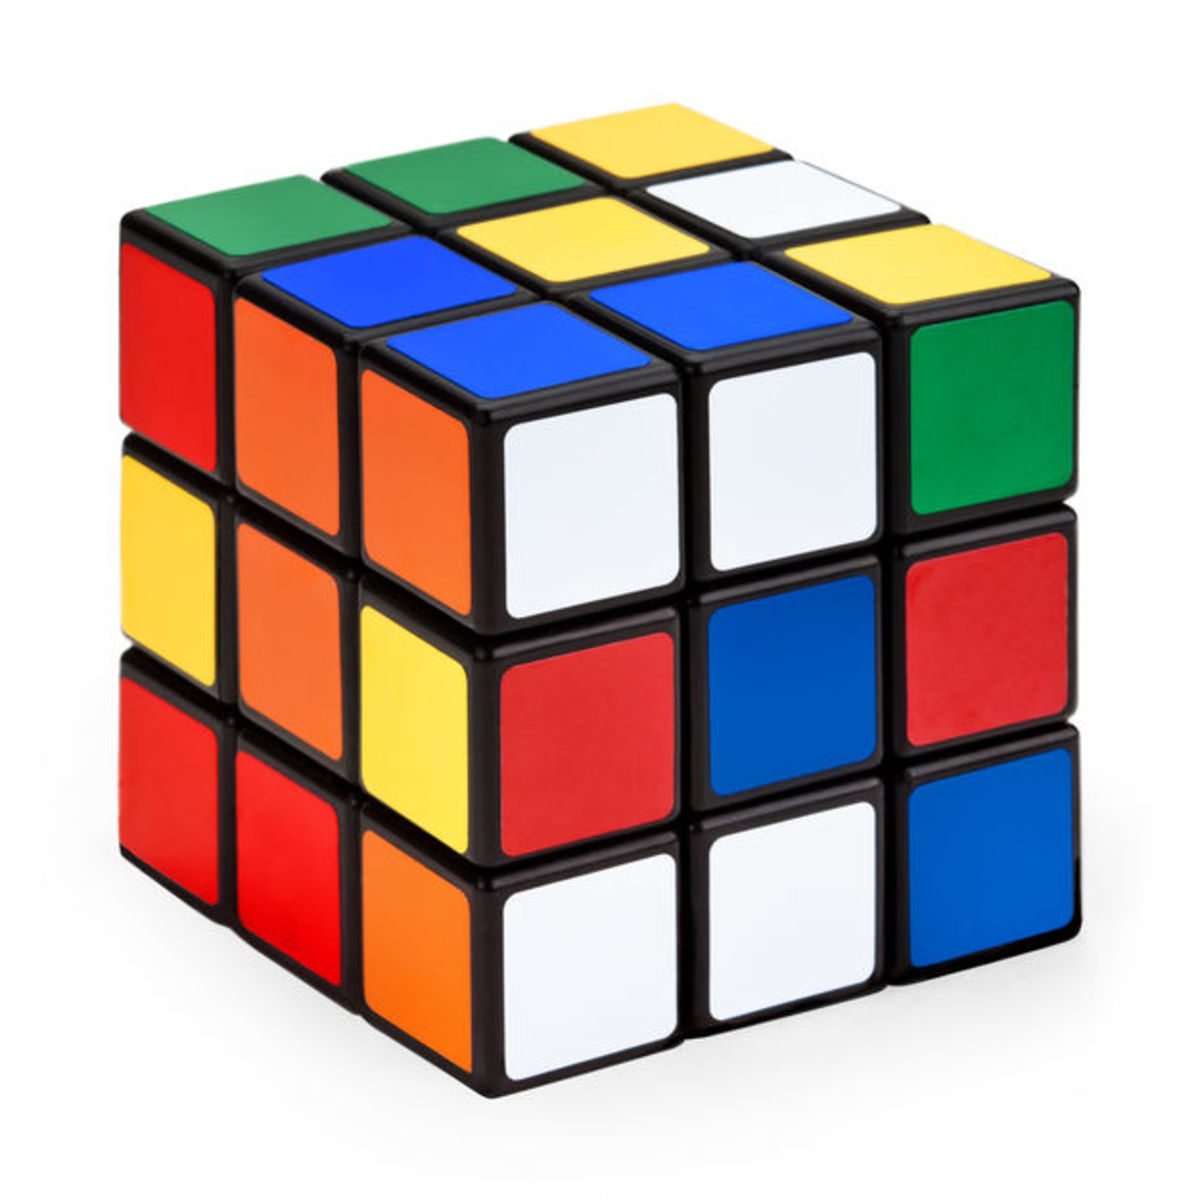 In 1980, the 3D Rubik's Cube became an icon.